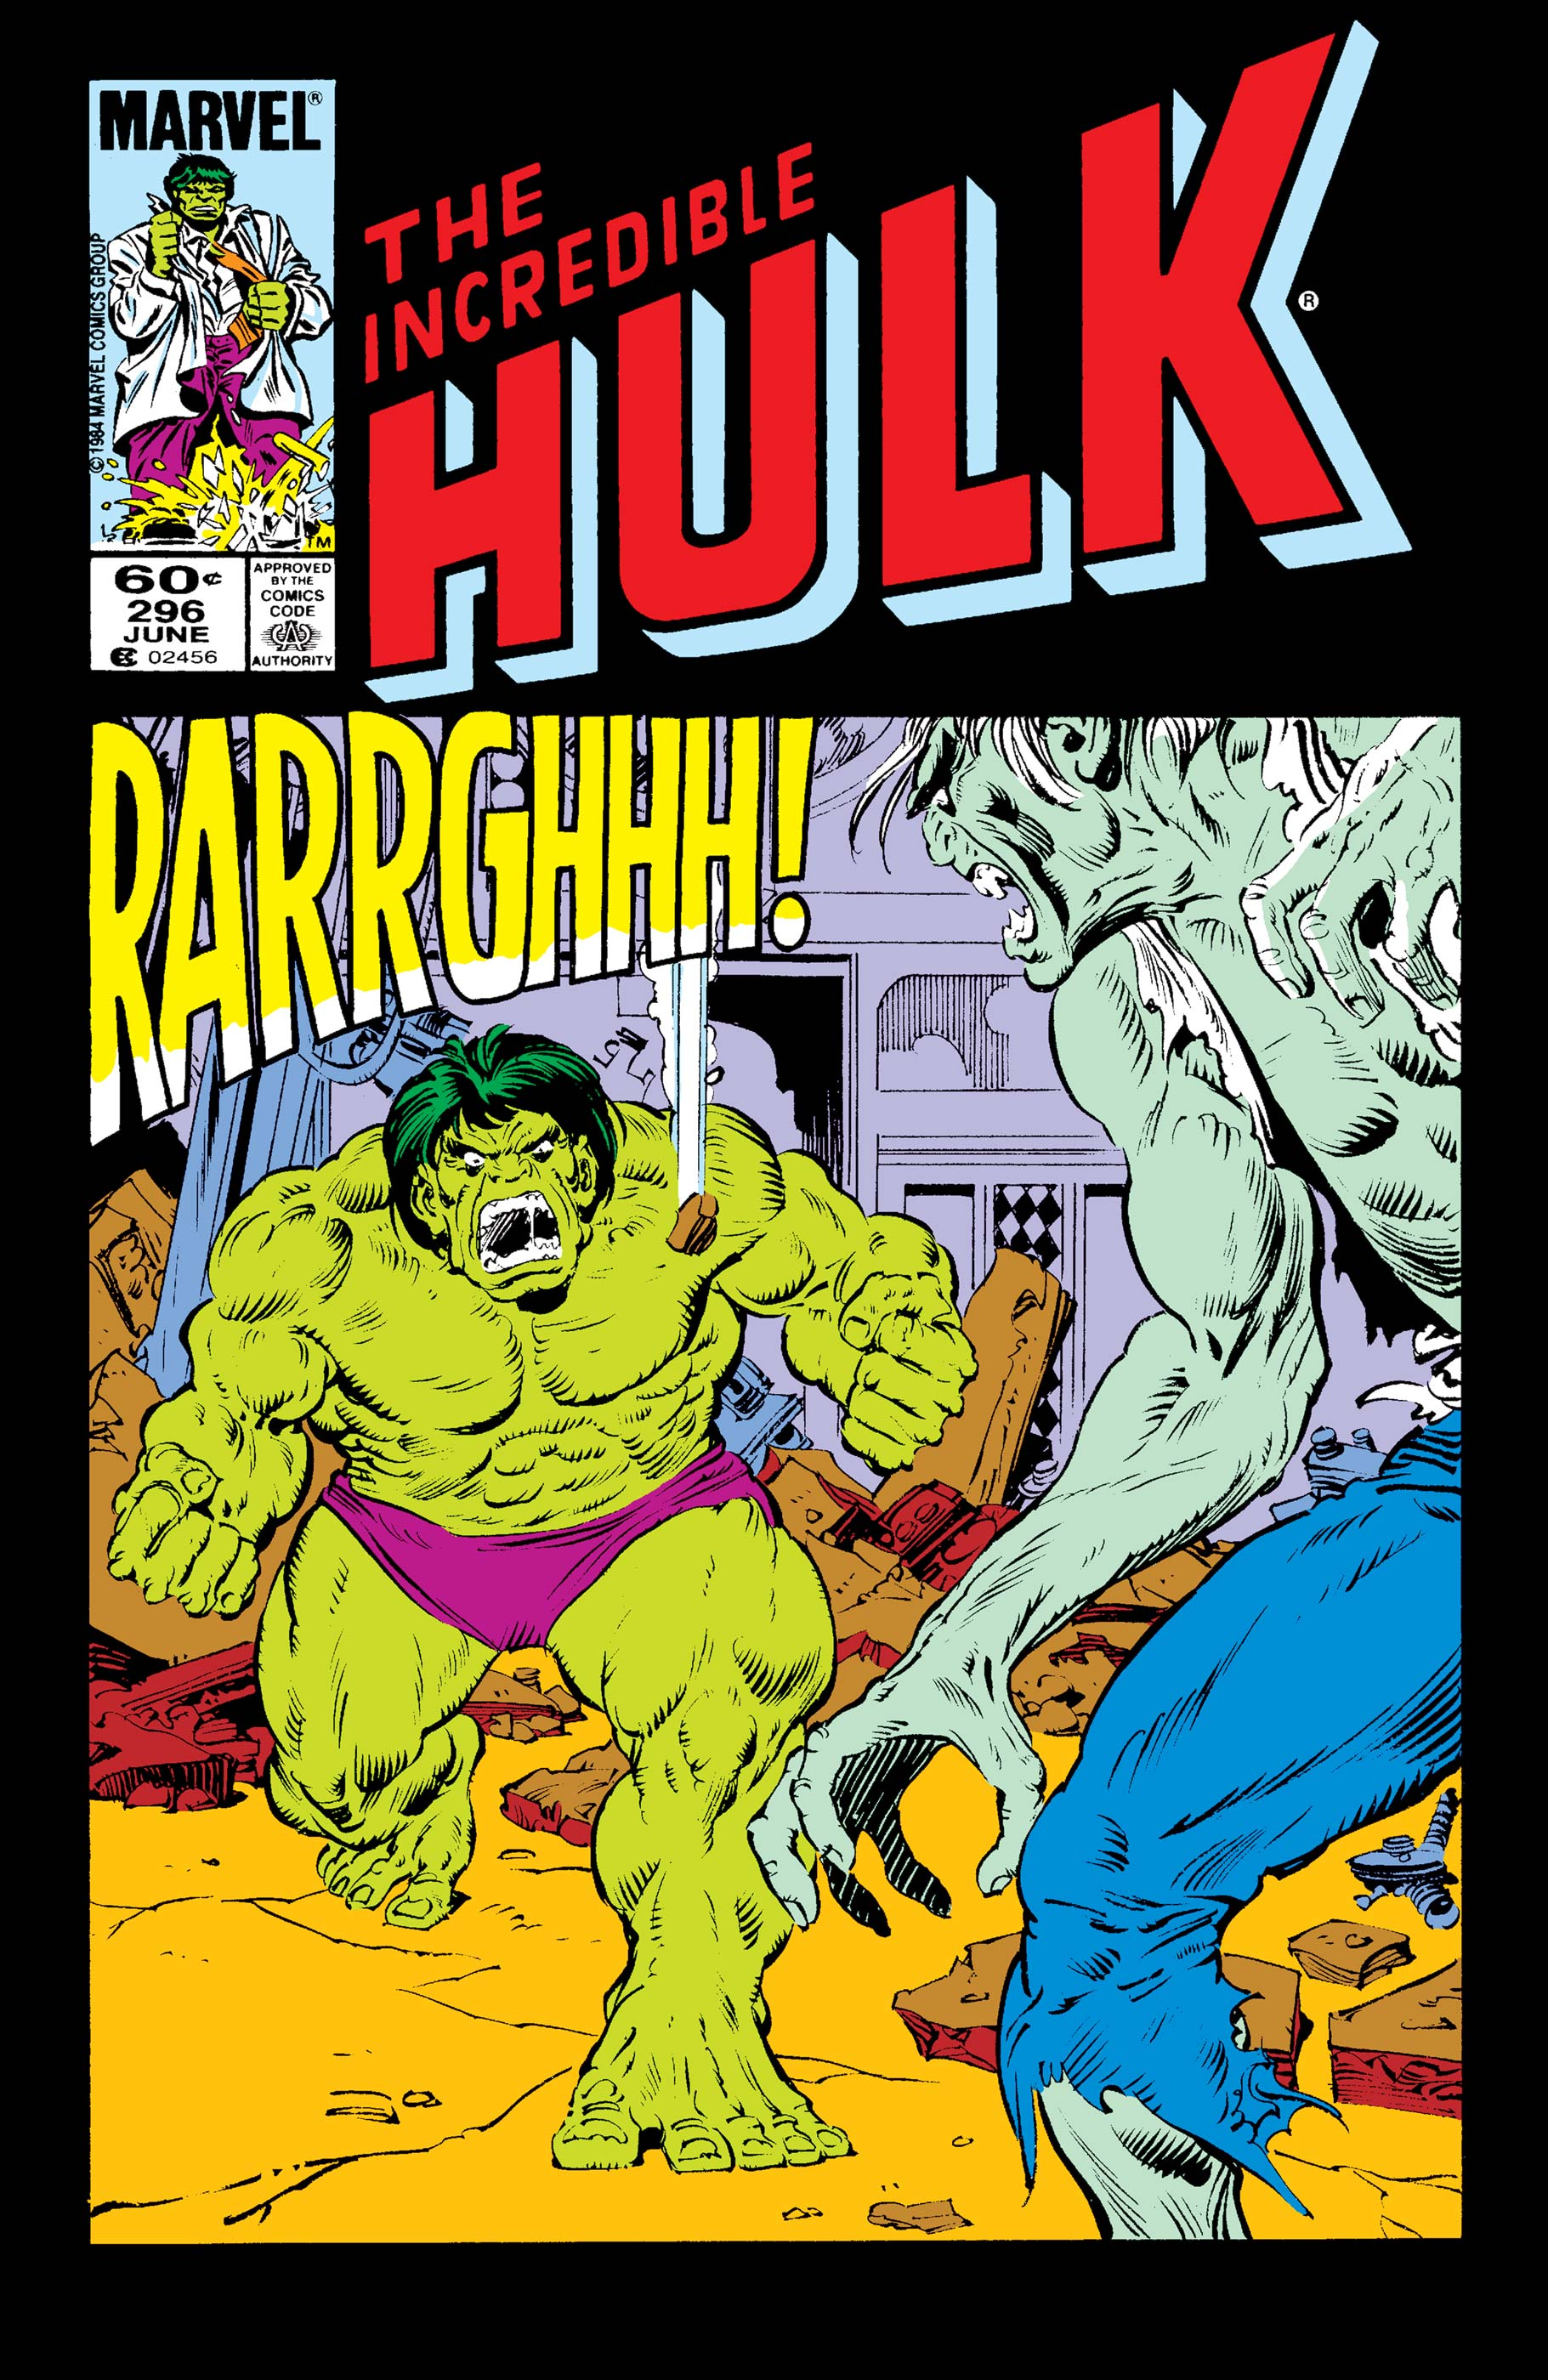 Incredible Hulk (1962) #296